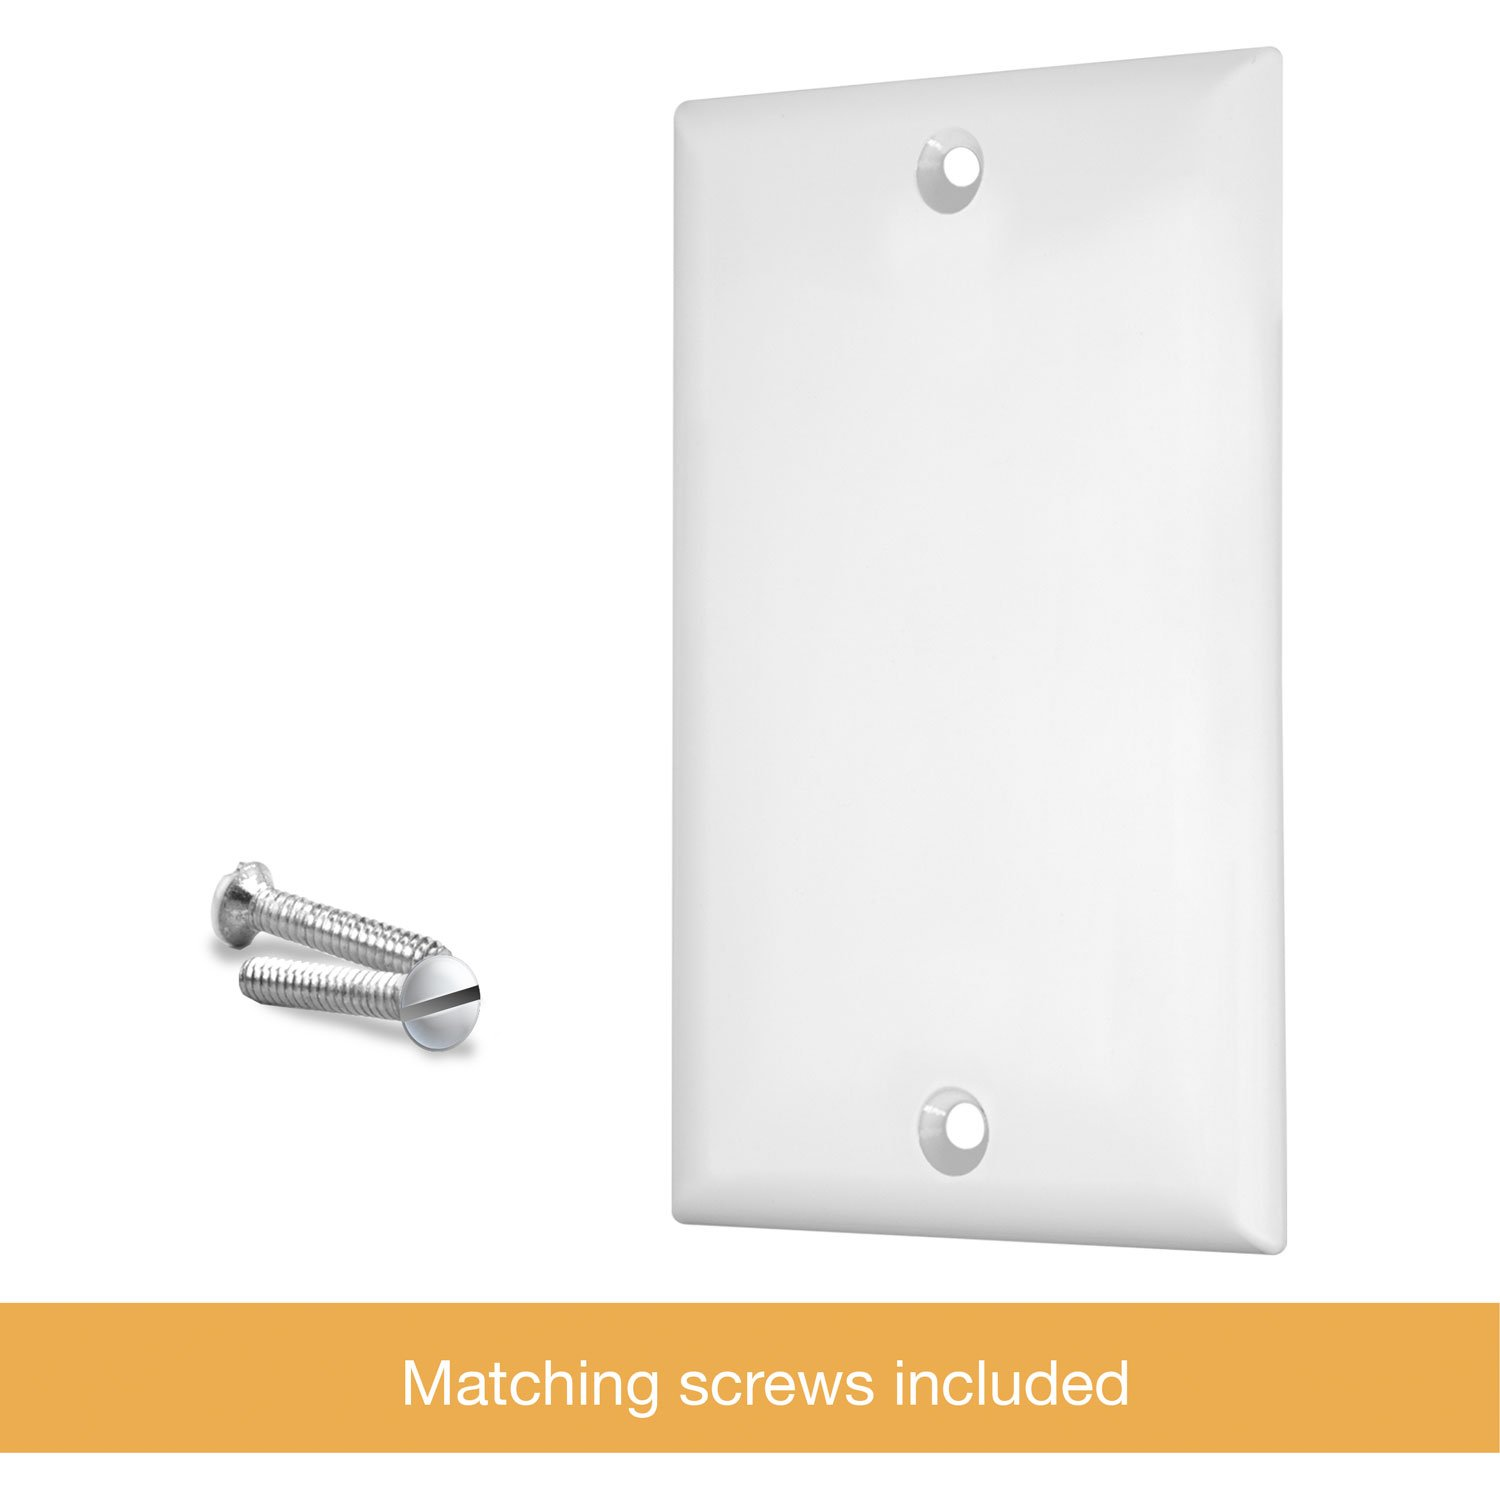 Enerlites 8801-W-10PCS Blank Cover Wall Plate, Standard Size 1-Gang, Polycarbonate Thermoplastic, White (10 Pack) by Enerlites (Image #8)